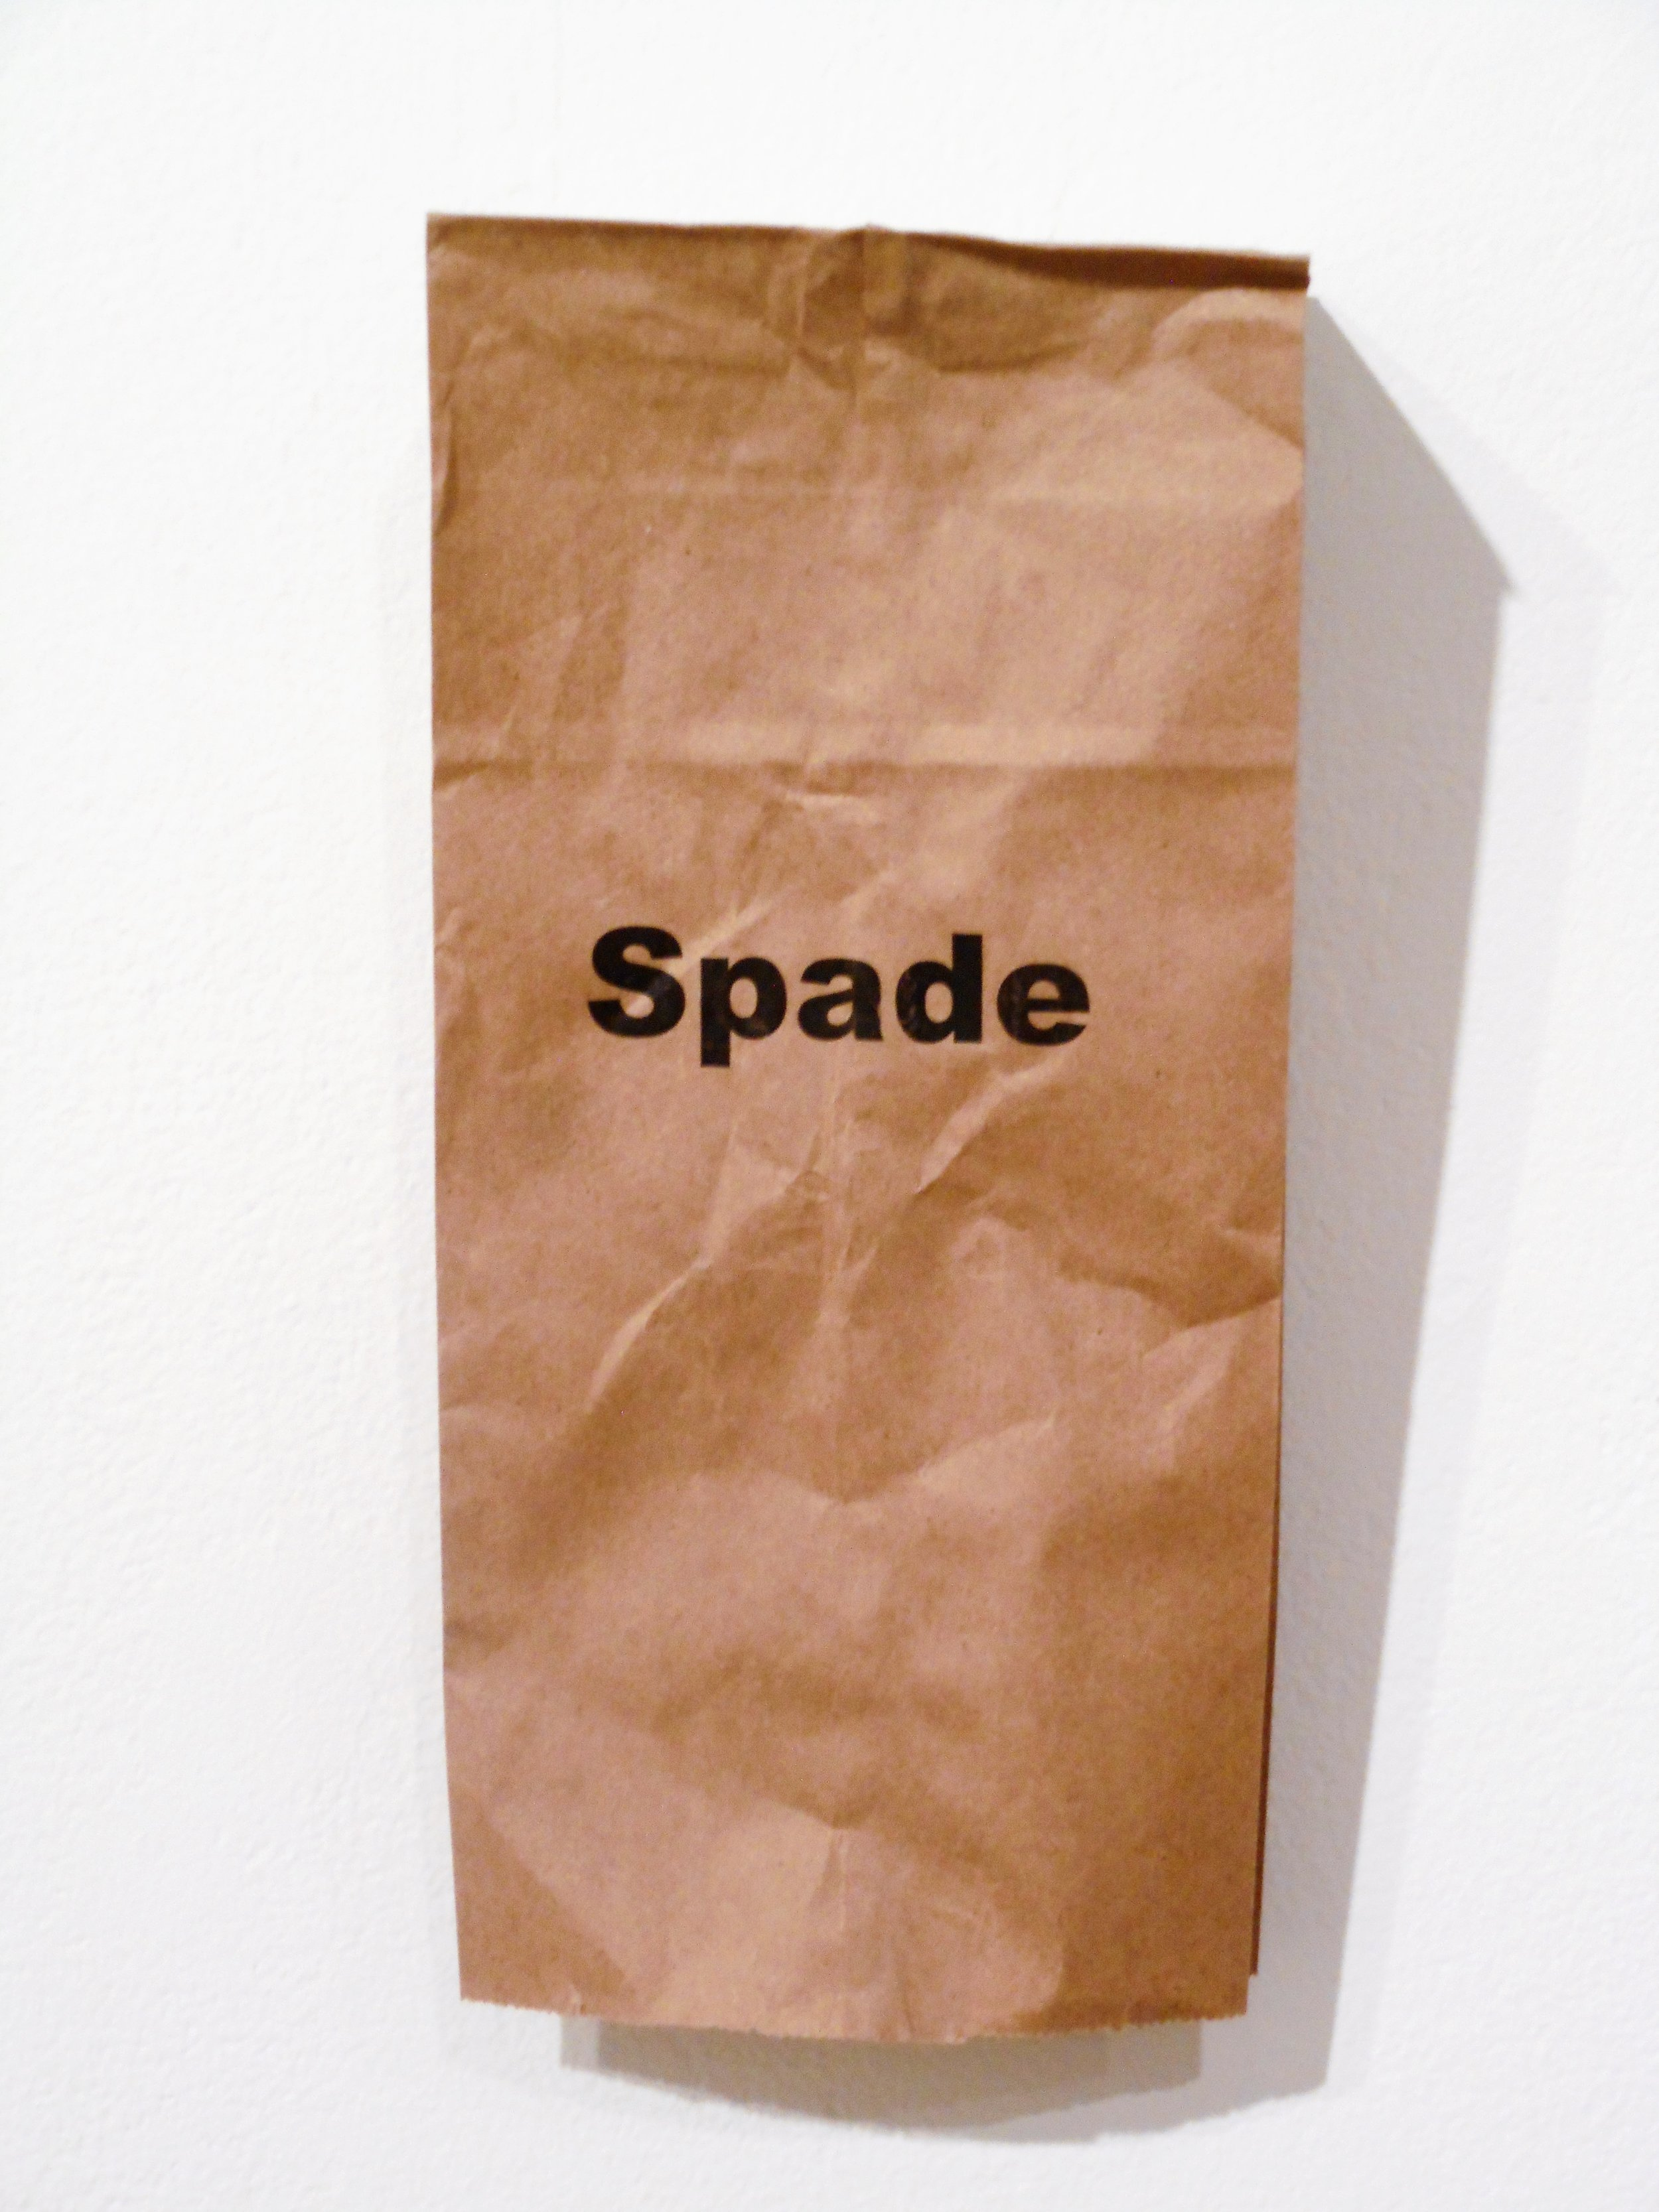 The Brown Paper Bag Test